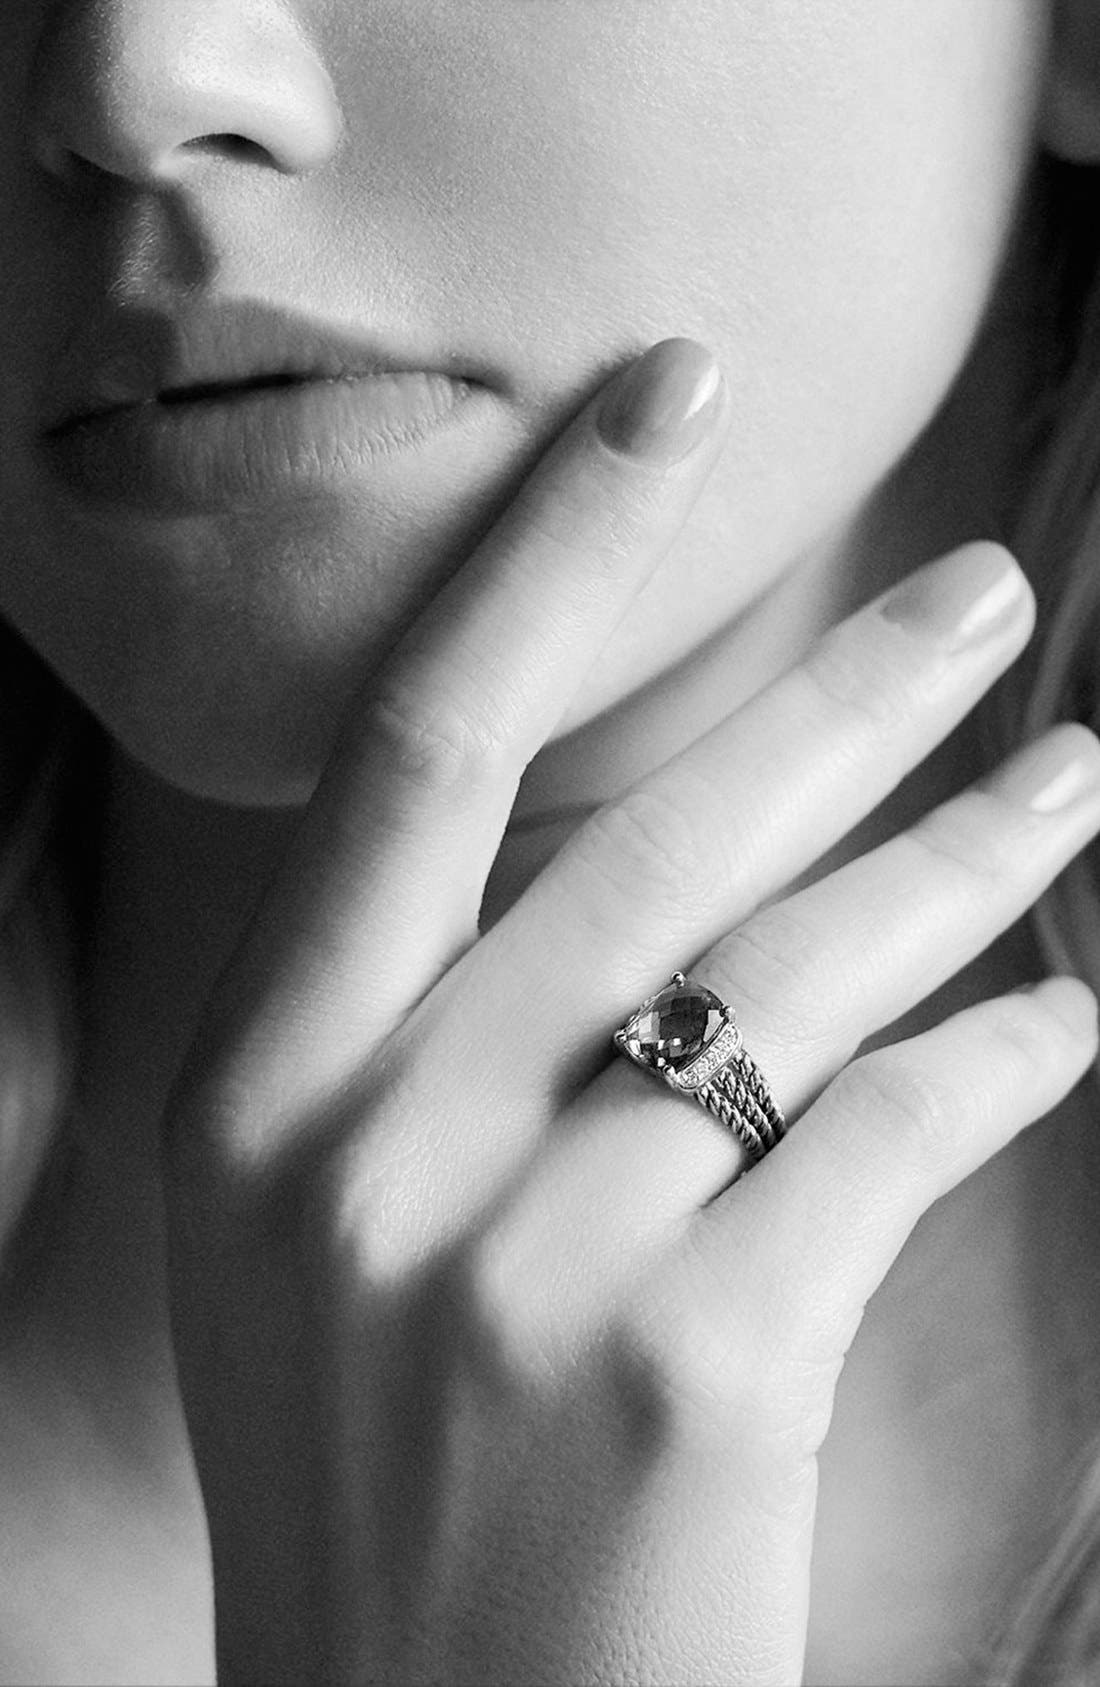 'Wheaton' Petite Ring with Semiprecious Stone & Diamonds,                             Alternate thumbnail 2, color,                             BLACK ONYX